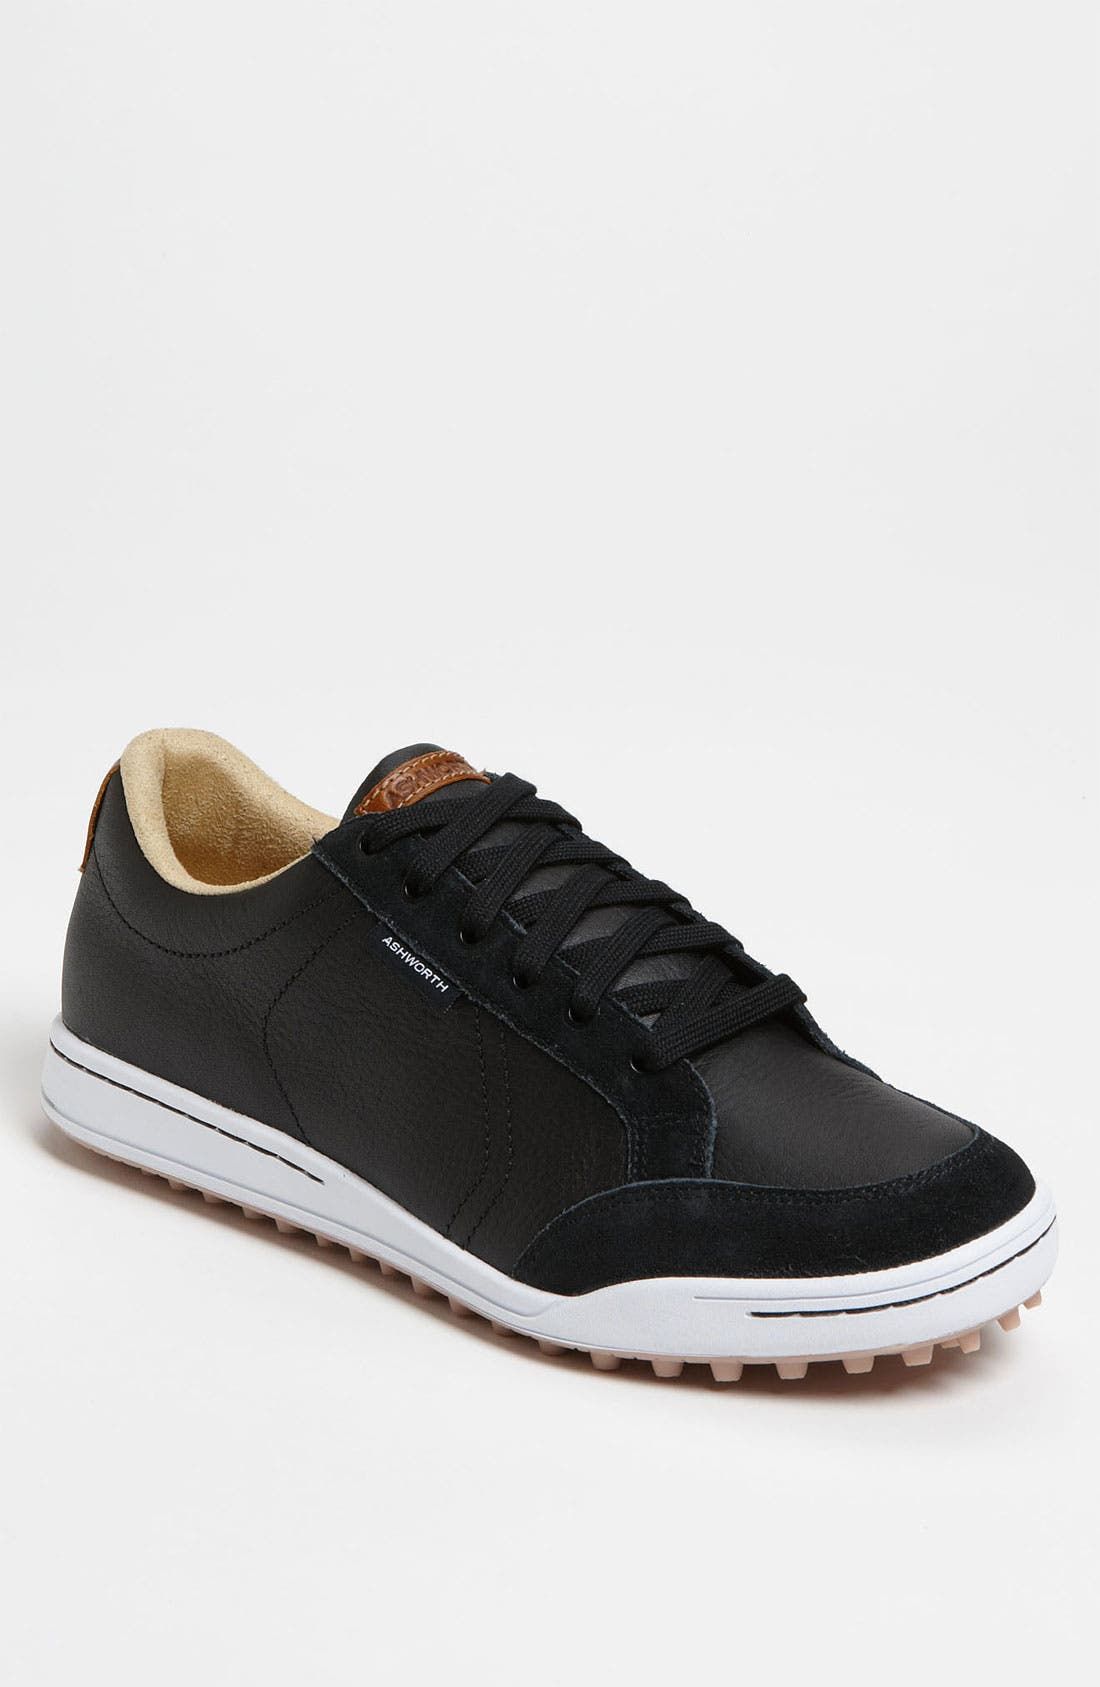 Alternate Image 1 Selected - Ashworth Golf 'Cardiff' Golf Shoe (Men) (Online Only)